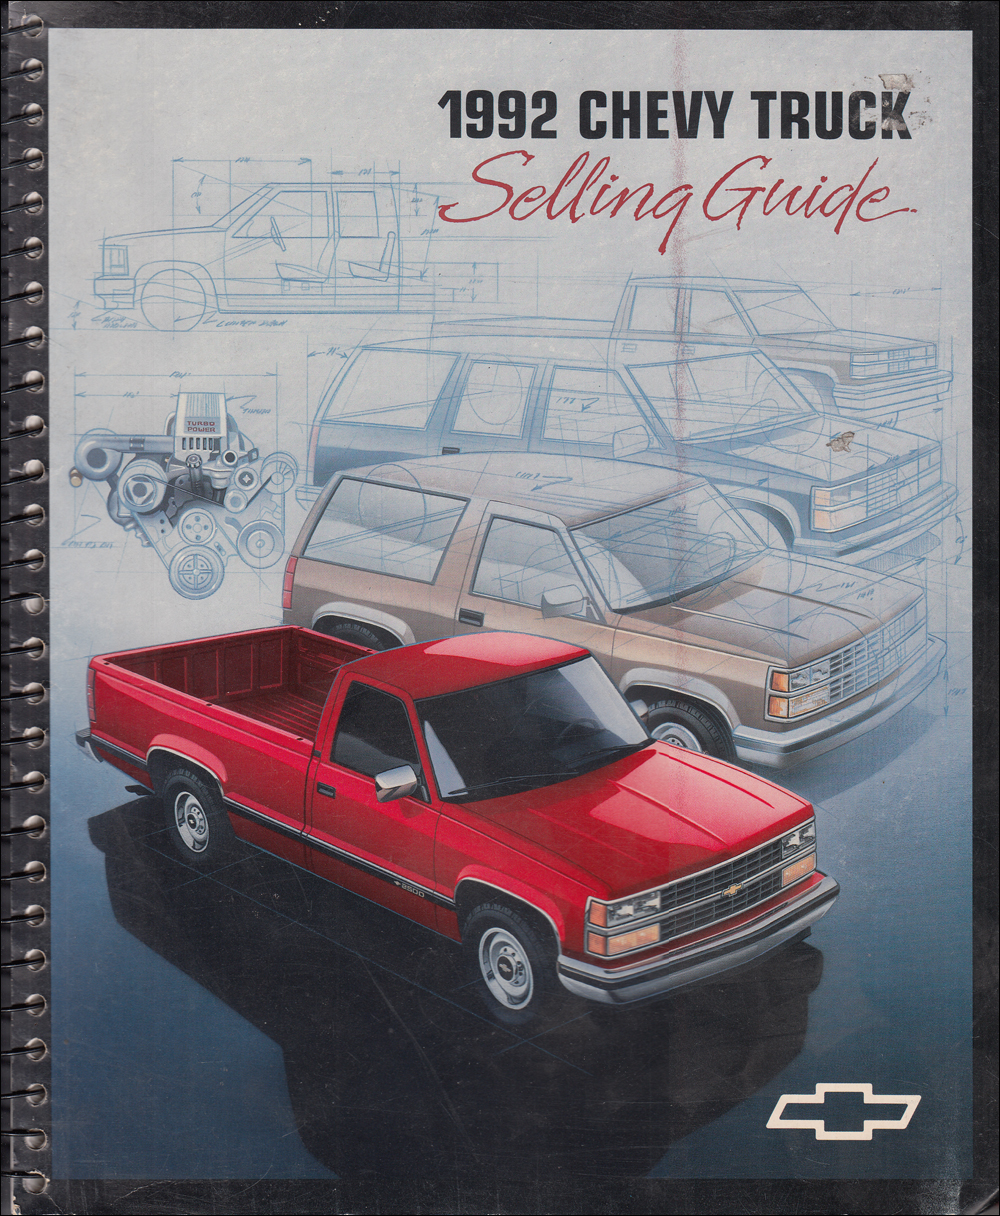 1992 Chevrolet Truck Selling Guide Sales Training Album Original